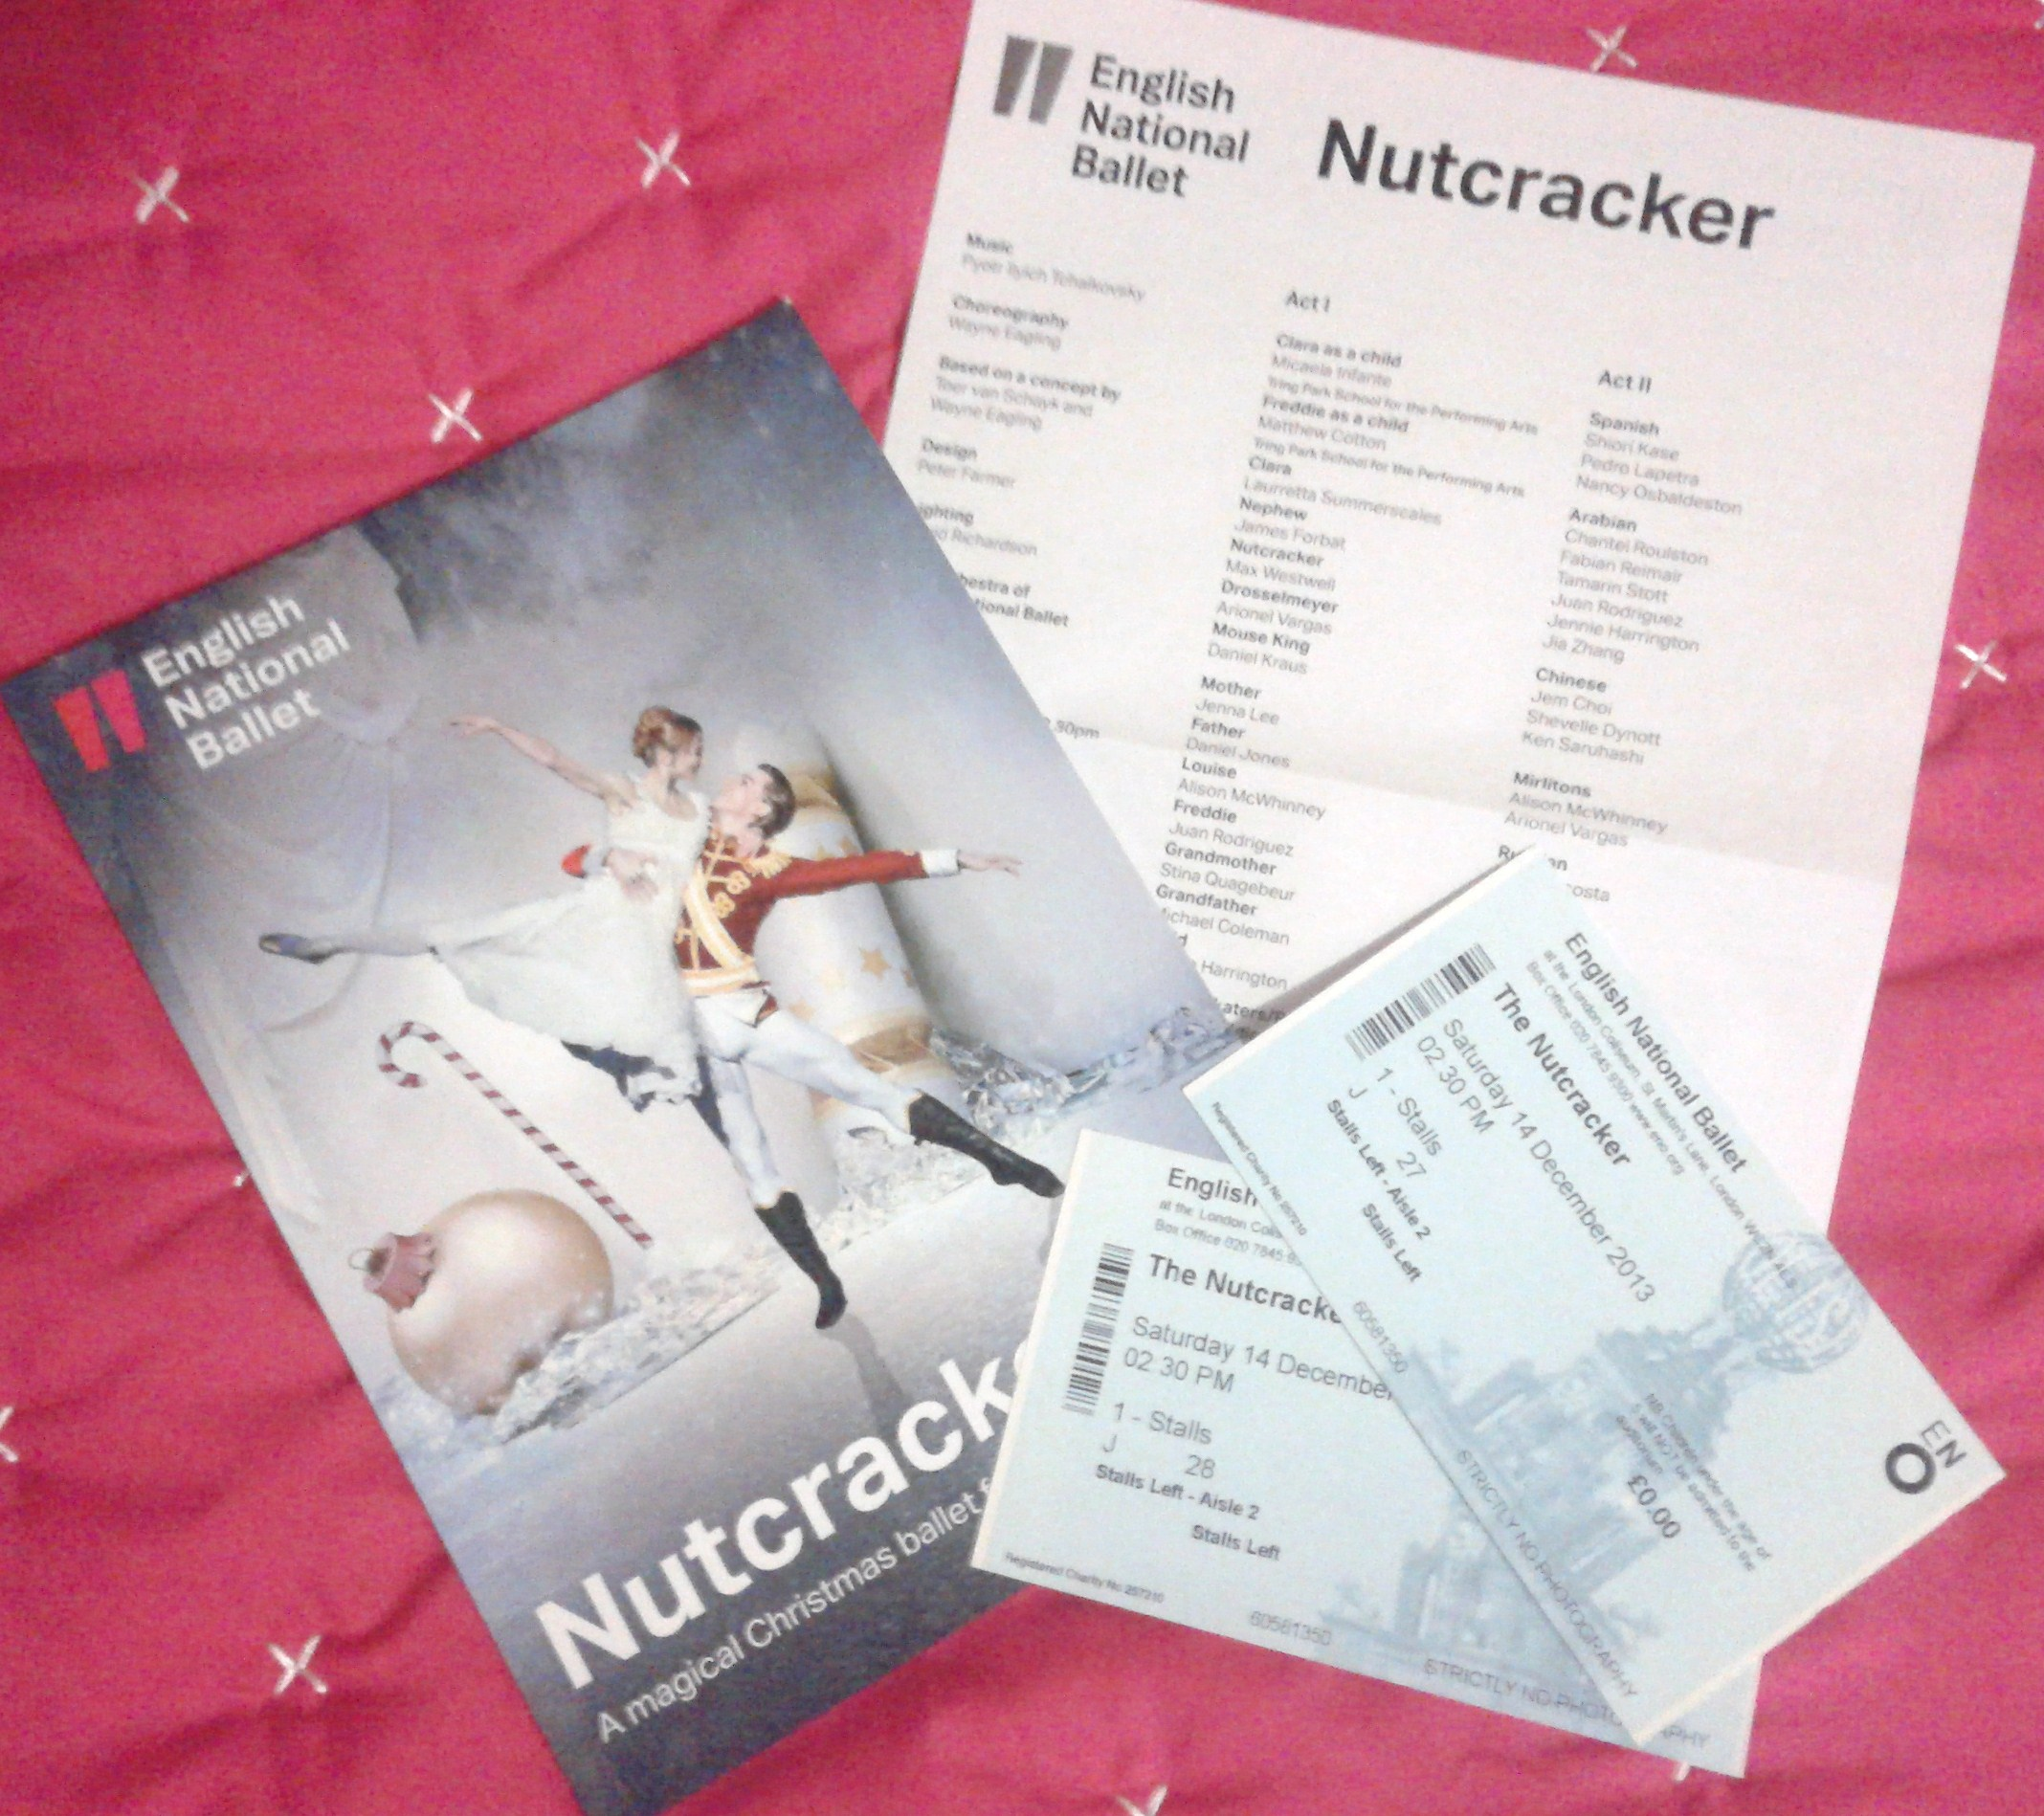 English National Ballet's Nutcracker at the London Coliseum programme and tickets, December 2013.